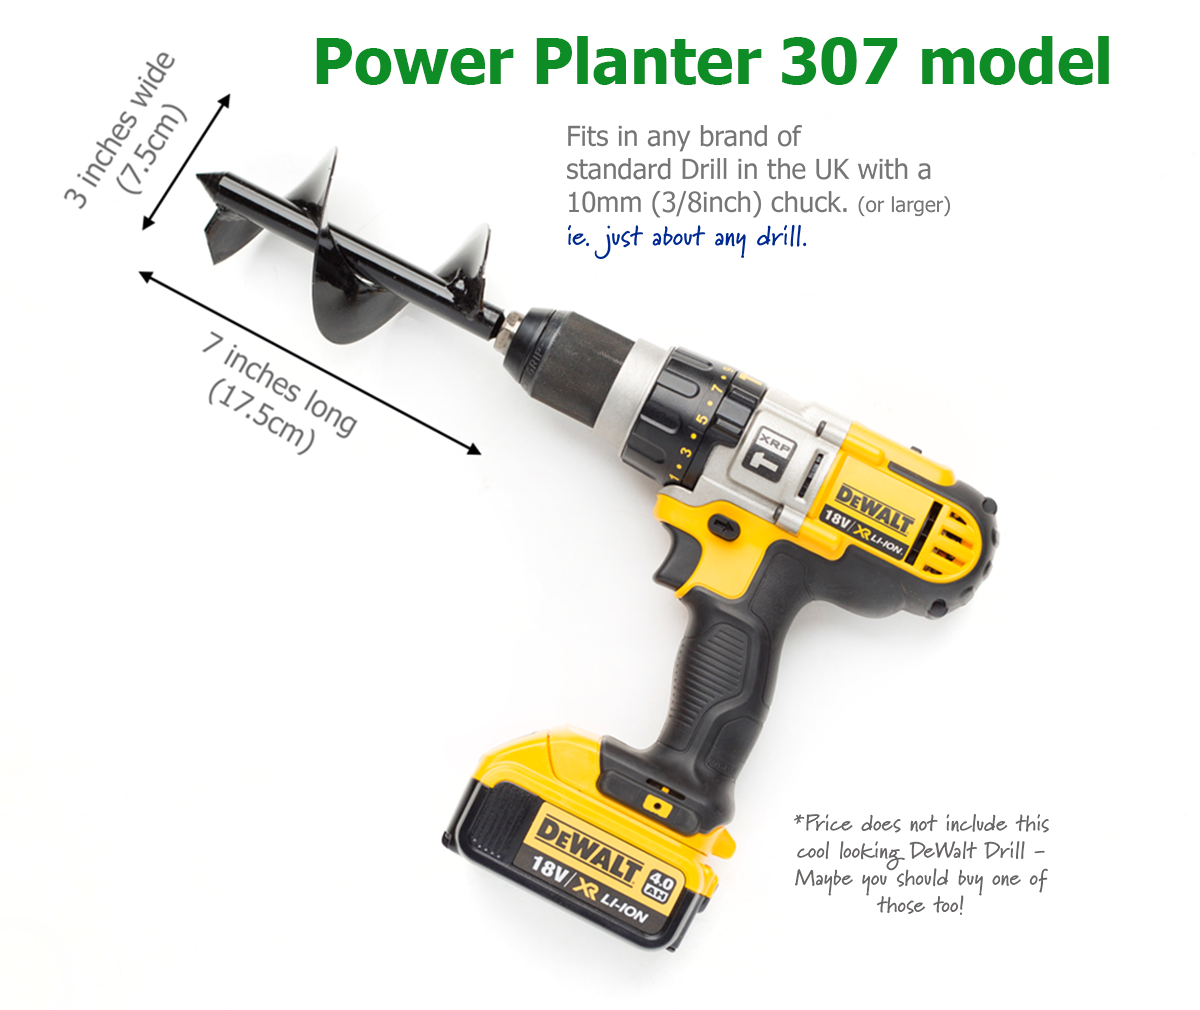 307 Power Planter